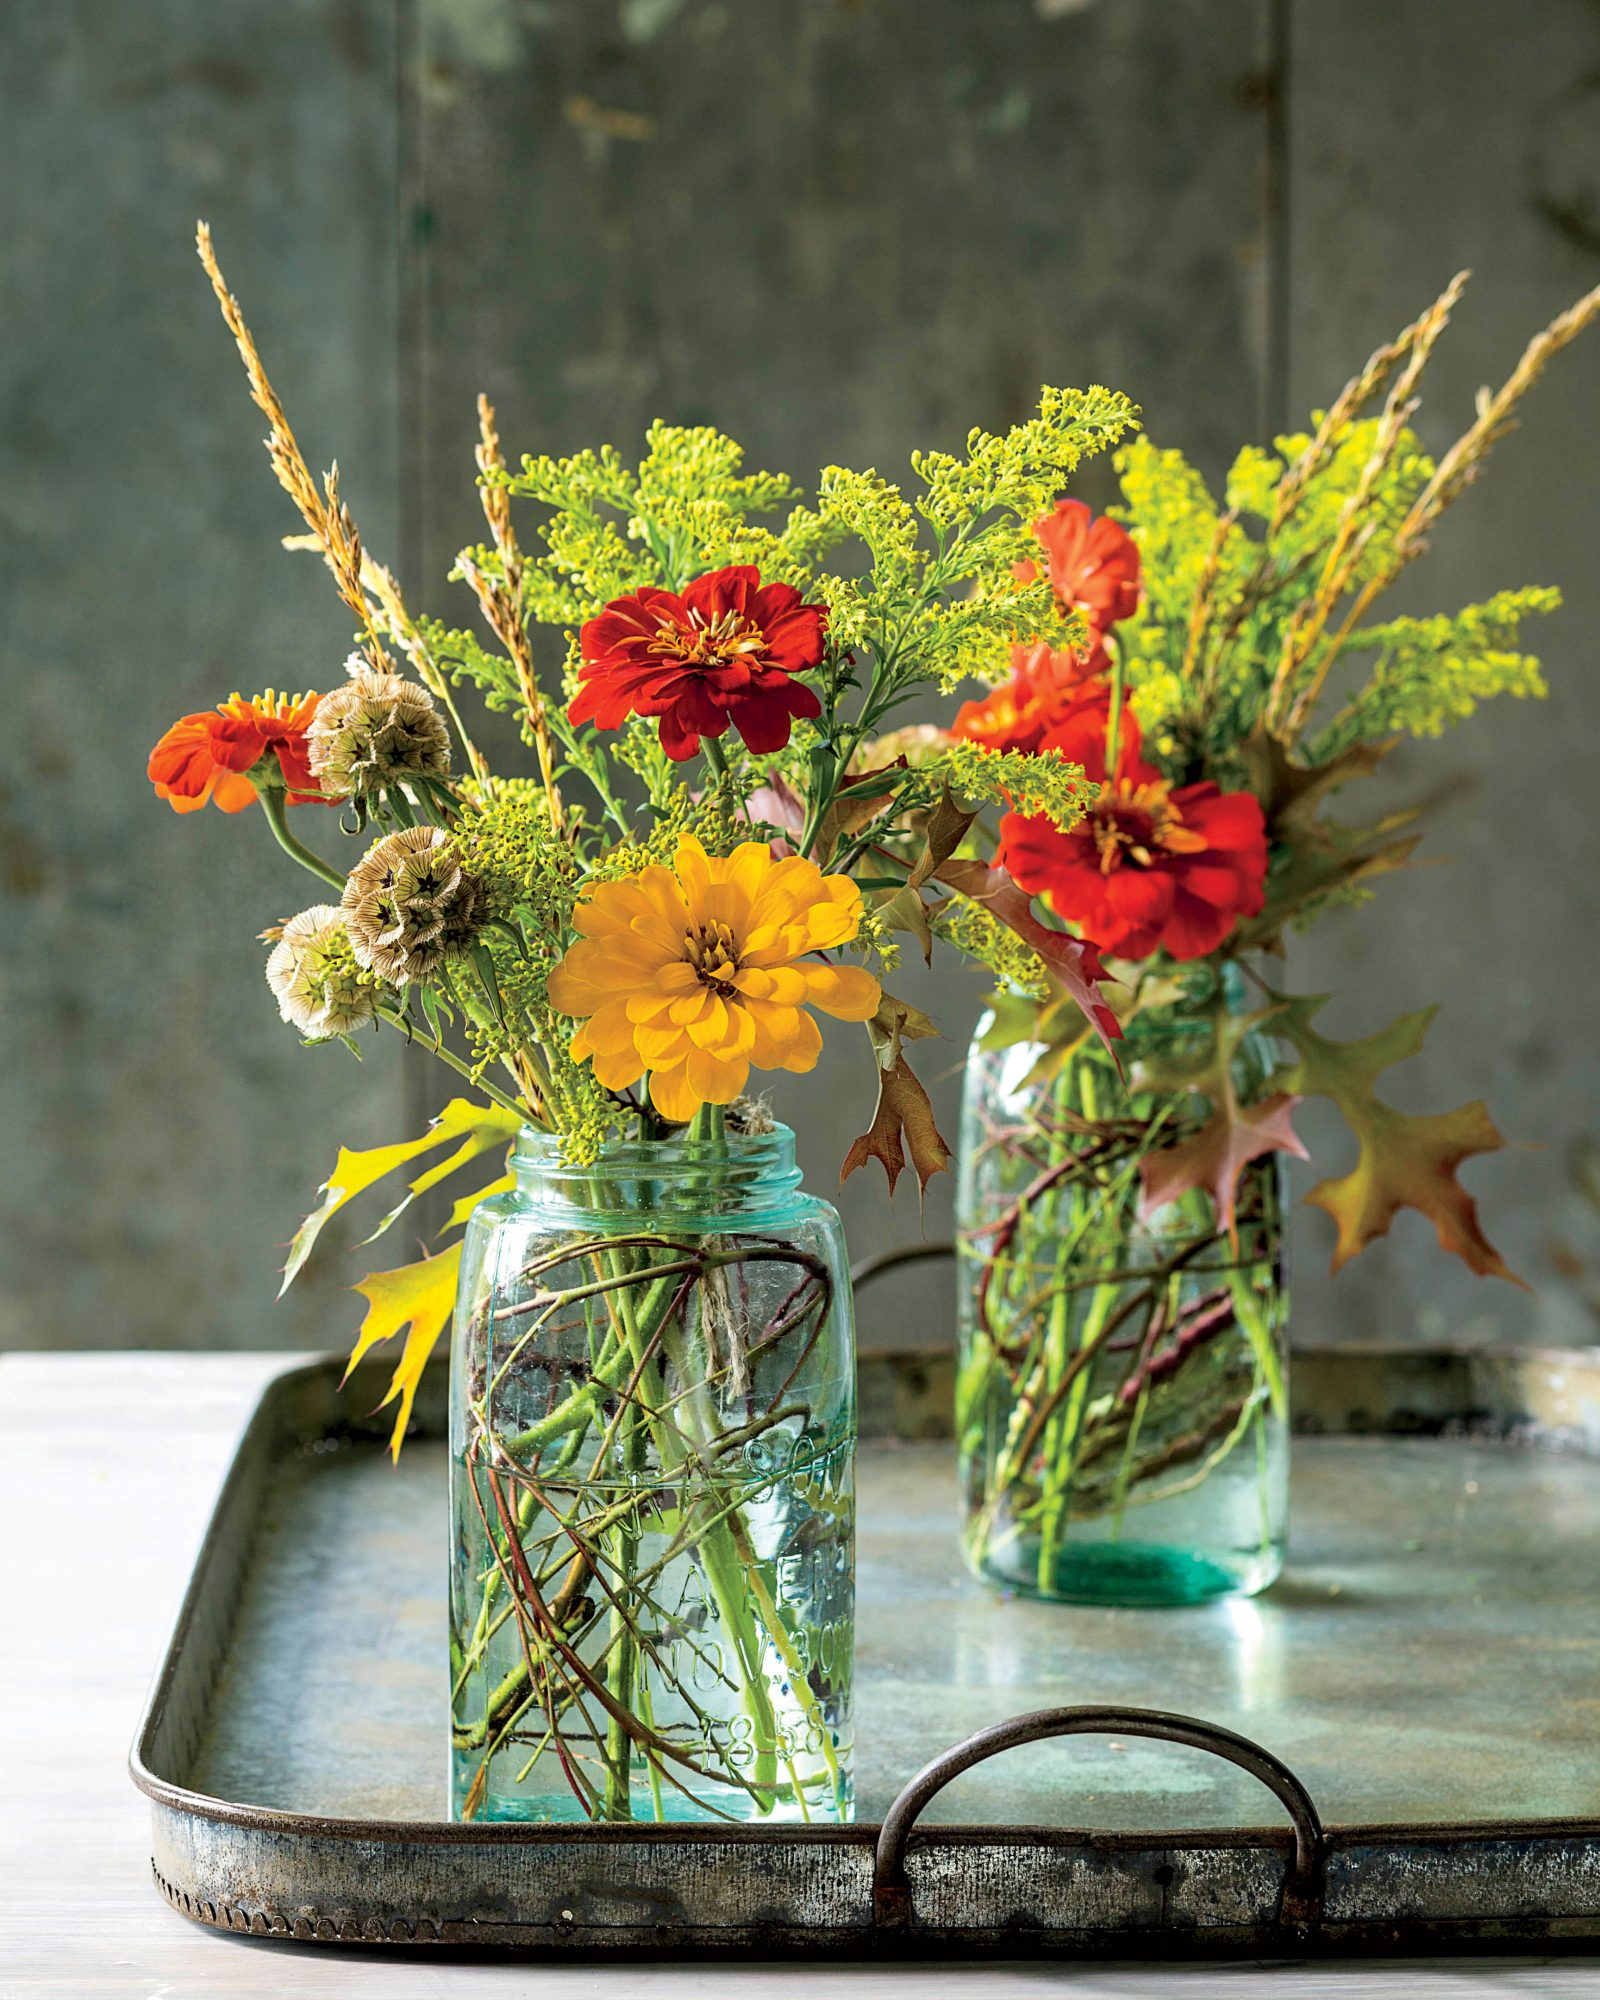 How to give and take flowers